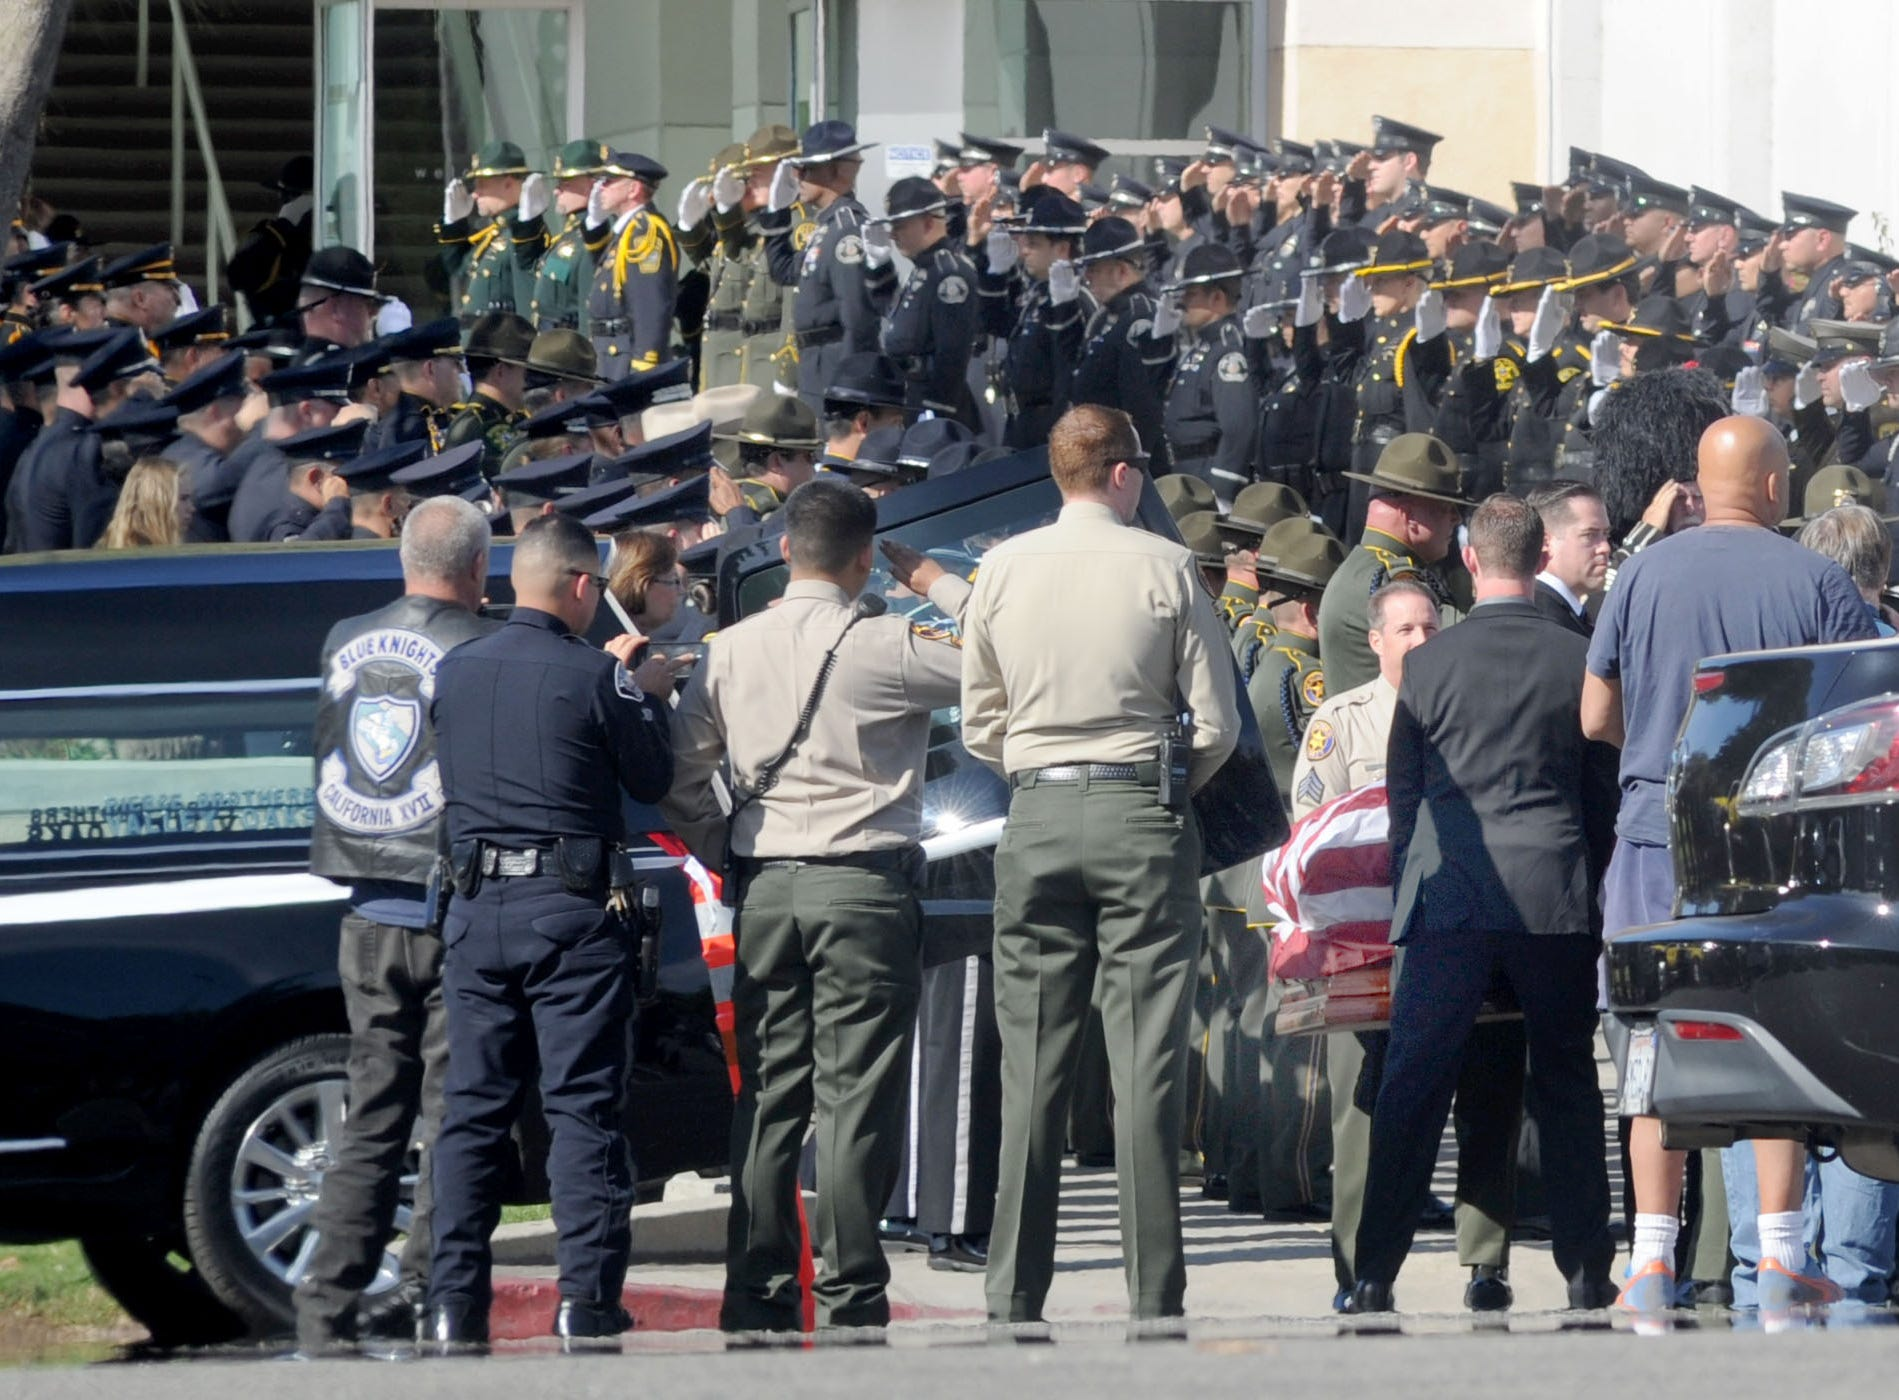 Law enforcement personnel salute as the casket of Ventura County Sheriff's Office Sgt. Ron Helus is carried out after his memorial service at Calvary Community Church Thursday. He was buried at Pierce Brothers Valley Oaks Memorial Park on Lindero Canyon Road.